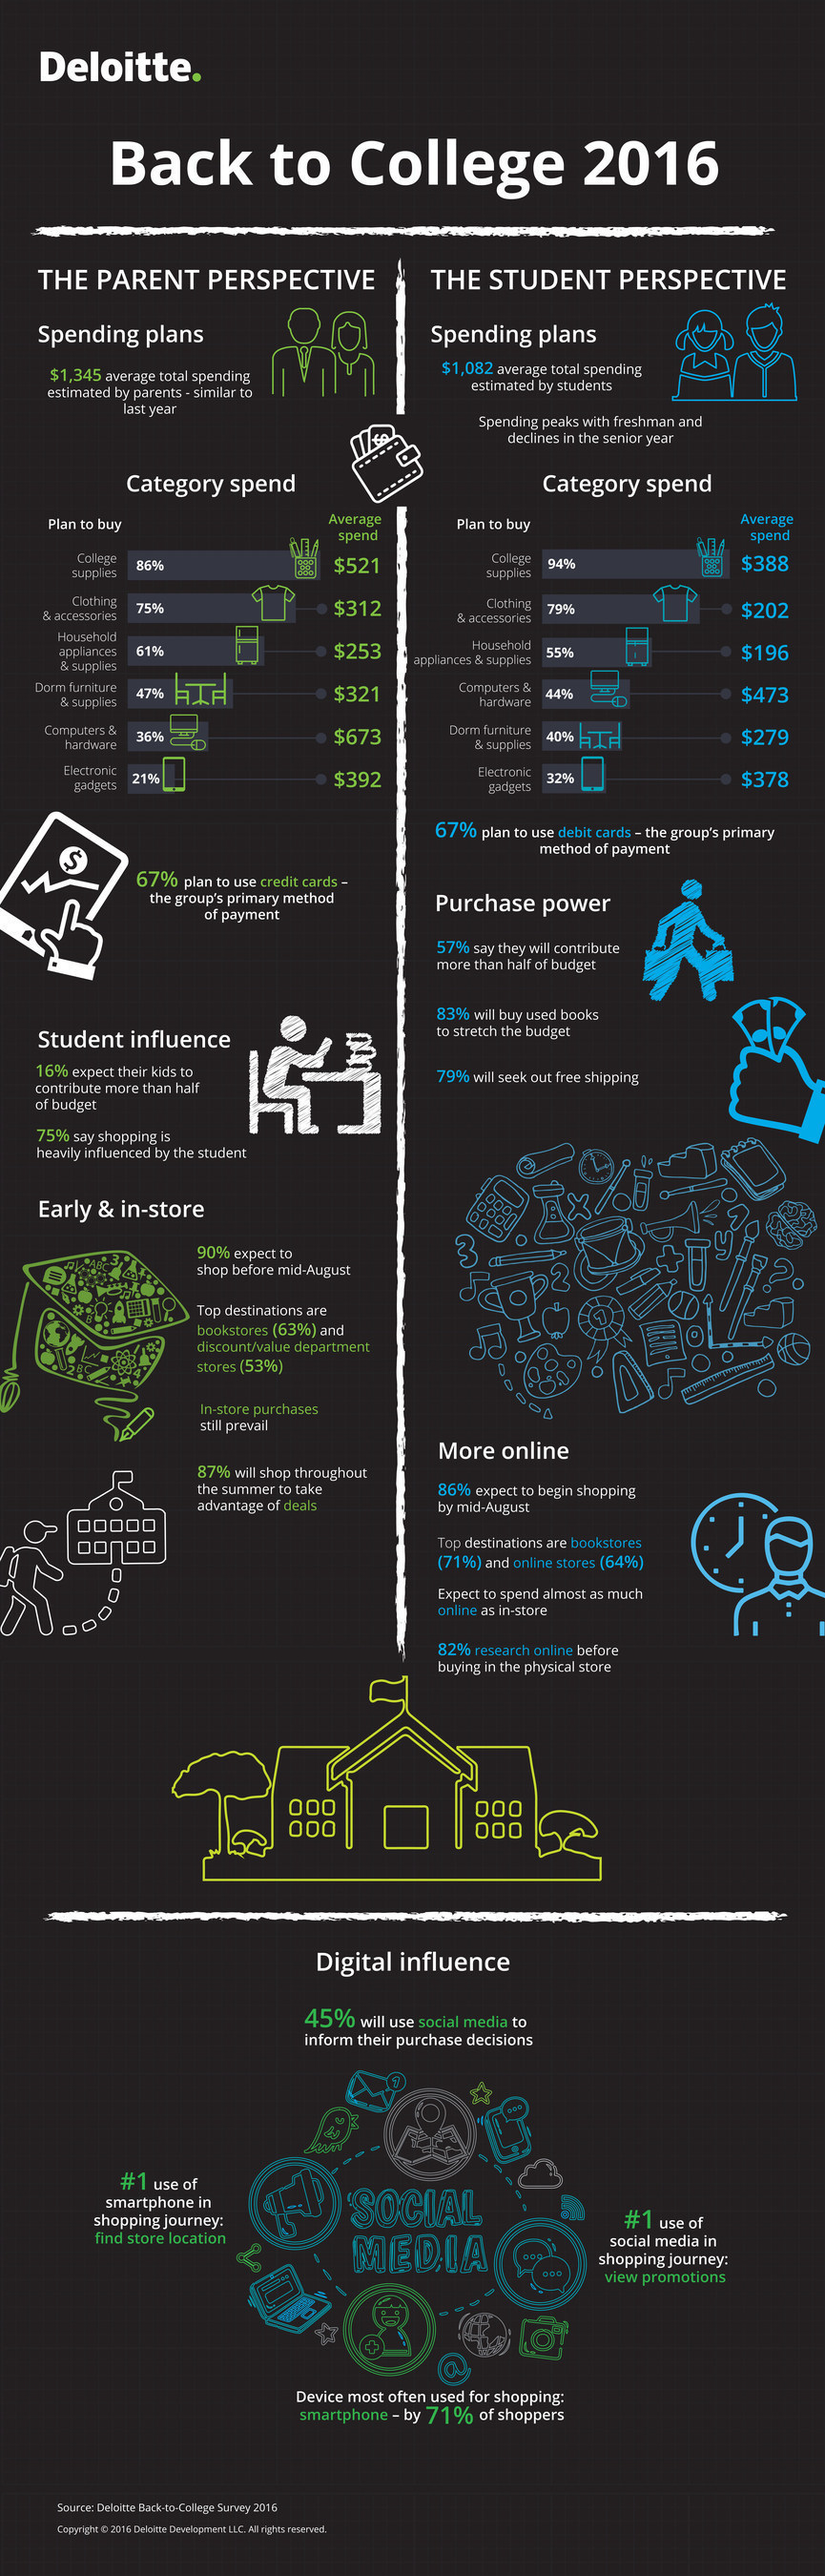 Back-to-College Infographic 2016.